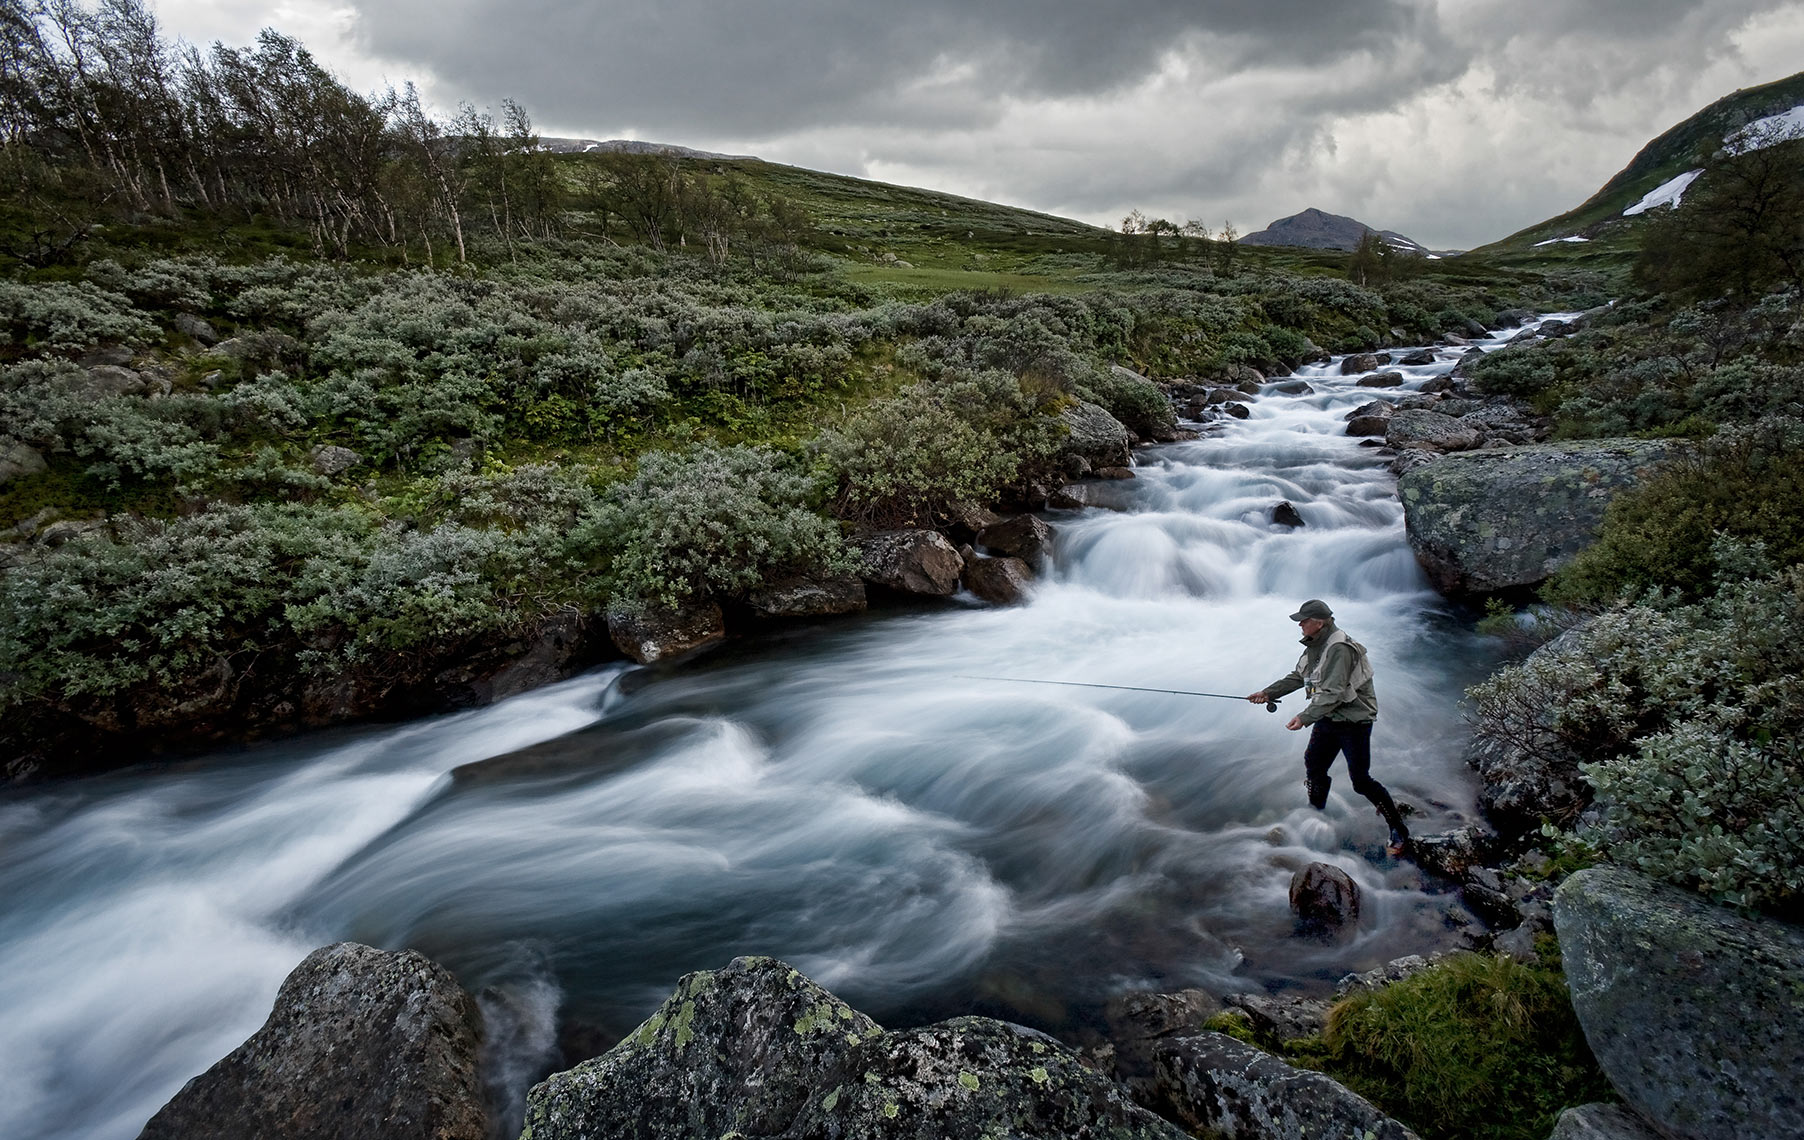 FISHING-IN-THE-RIVER_RAGGSTEINDALEN